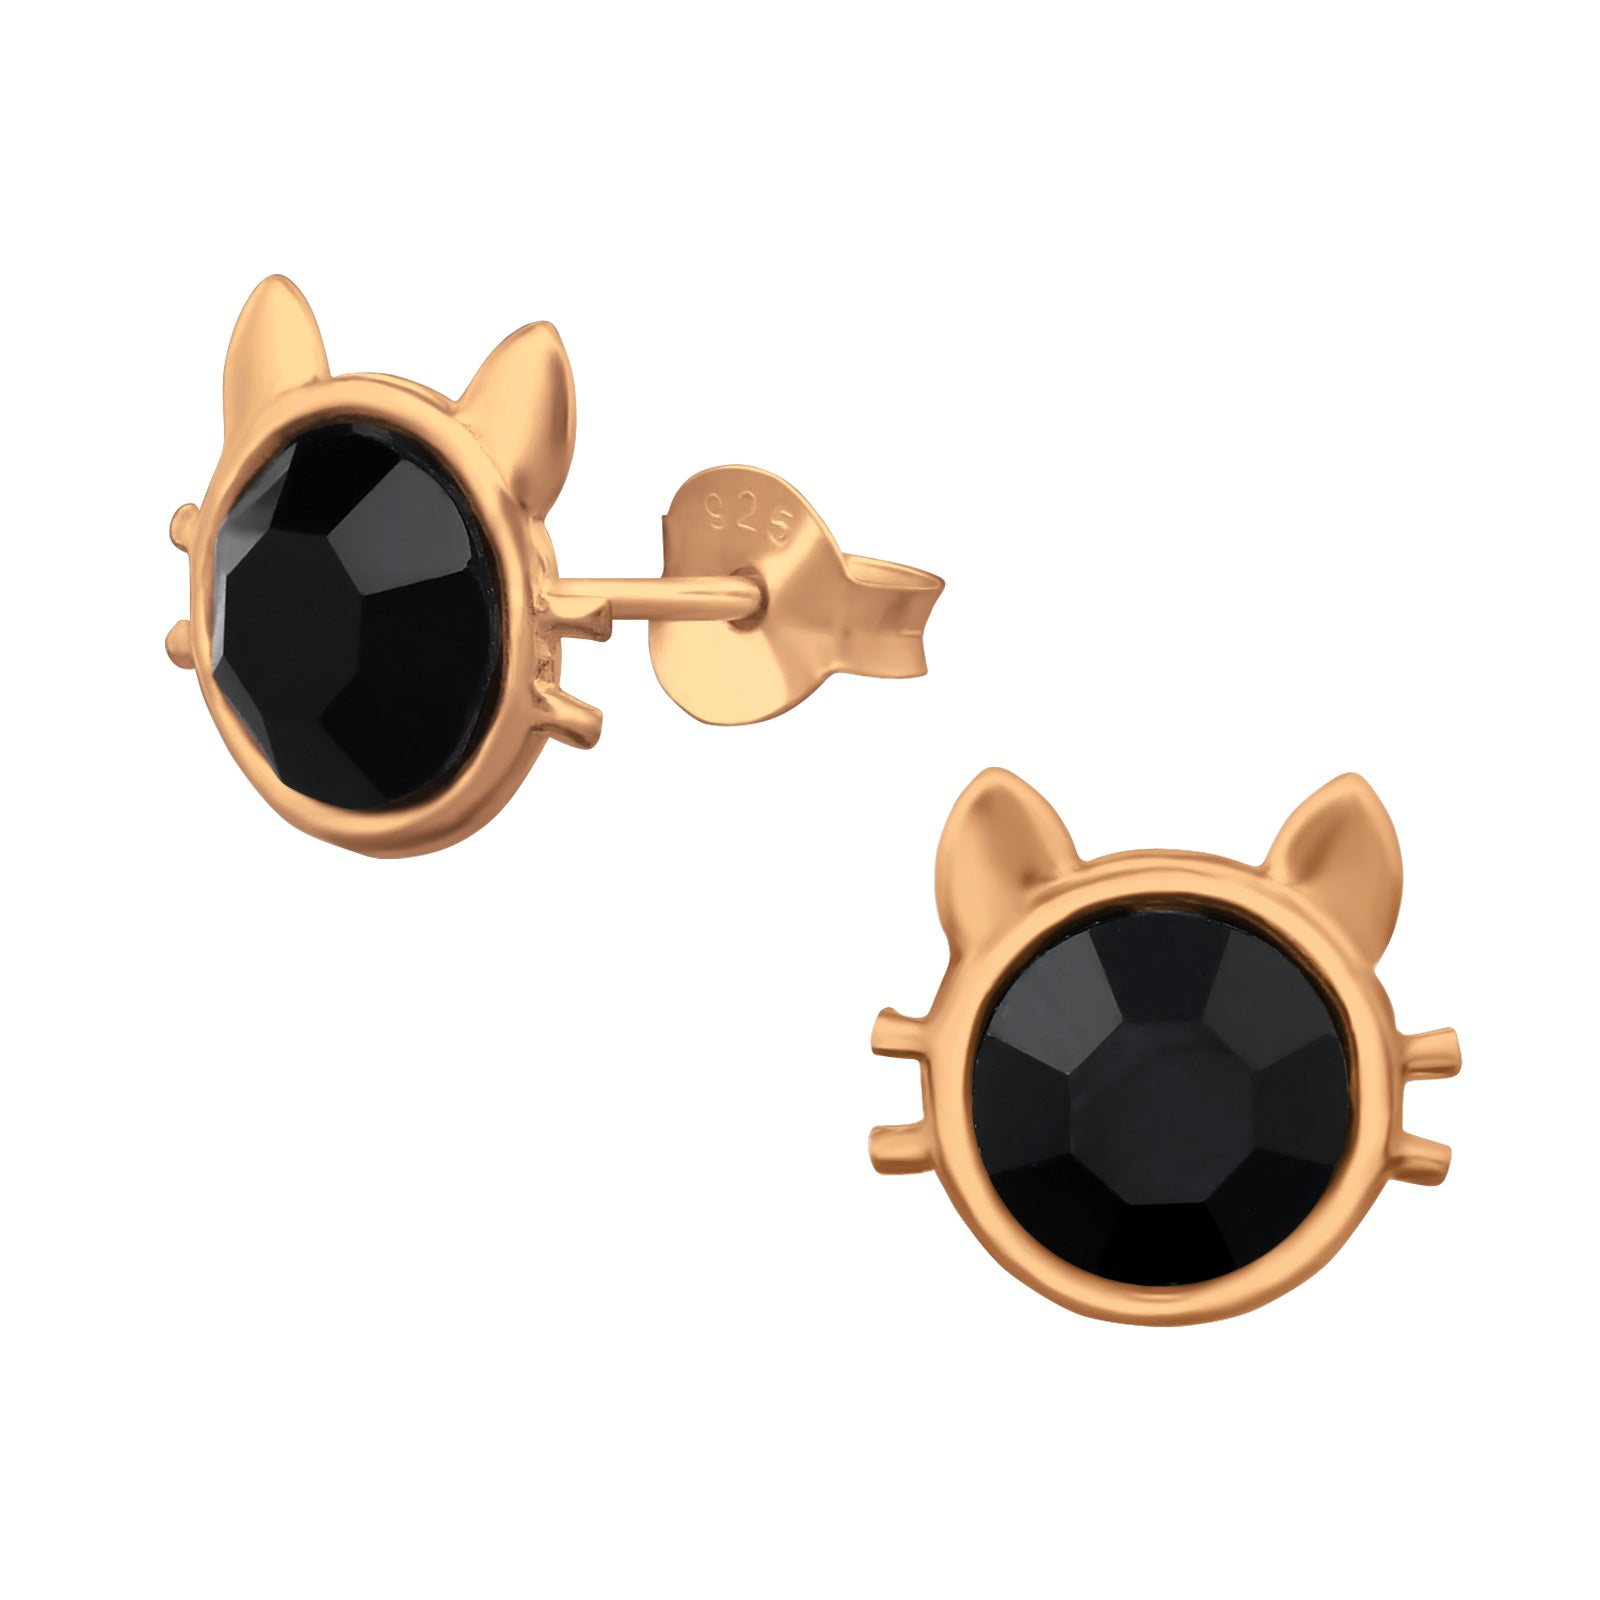 Black Onyx Cat Head Whiskers Stud Earrings - WHYTE QUARTZ